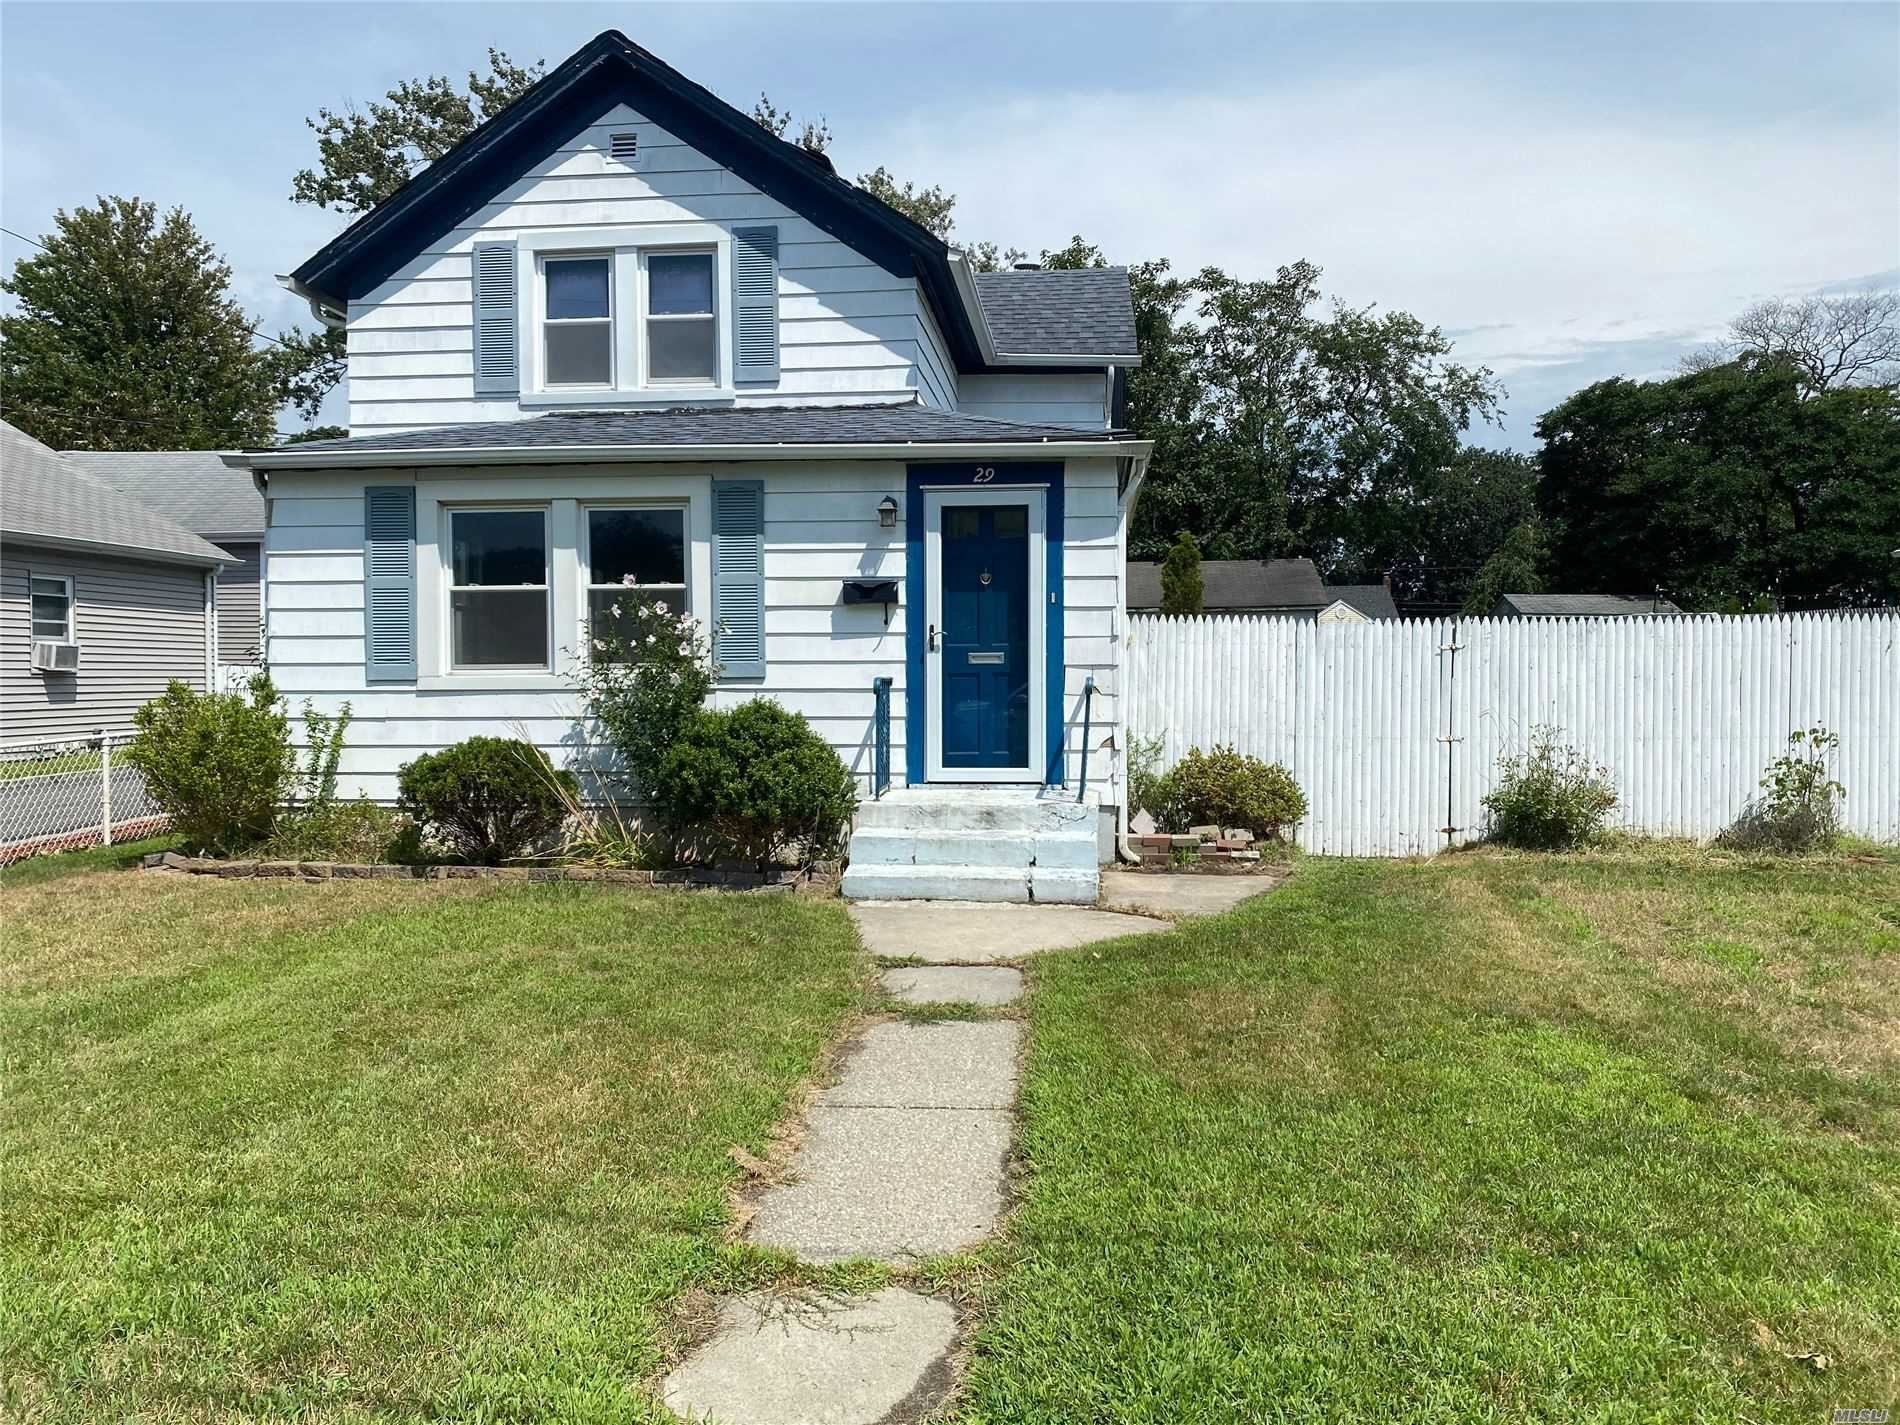 29 Wood Ave, Patchogue, NY 11772 - MLS#: 3239464